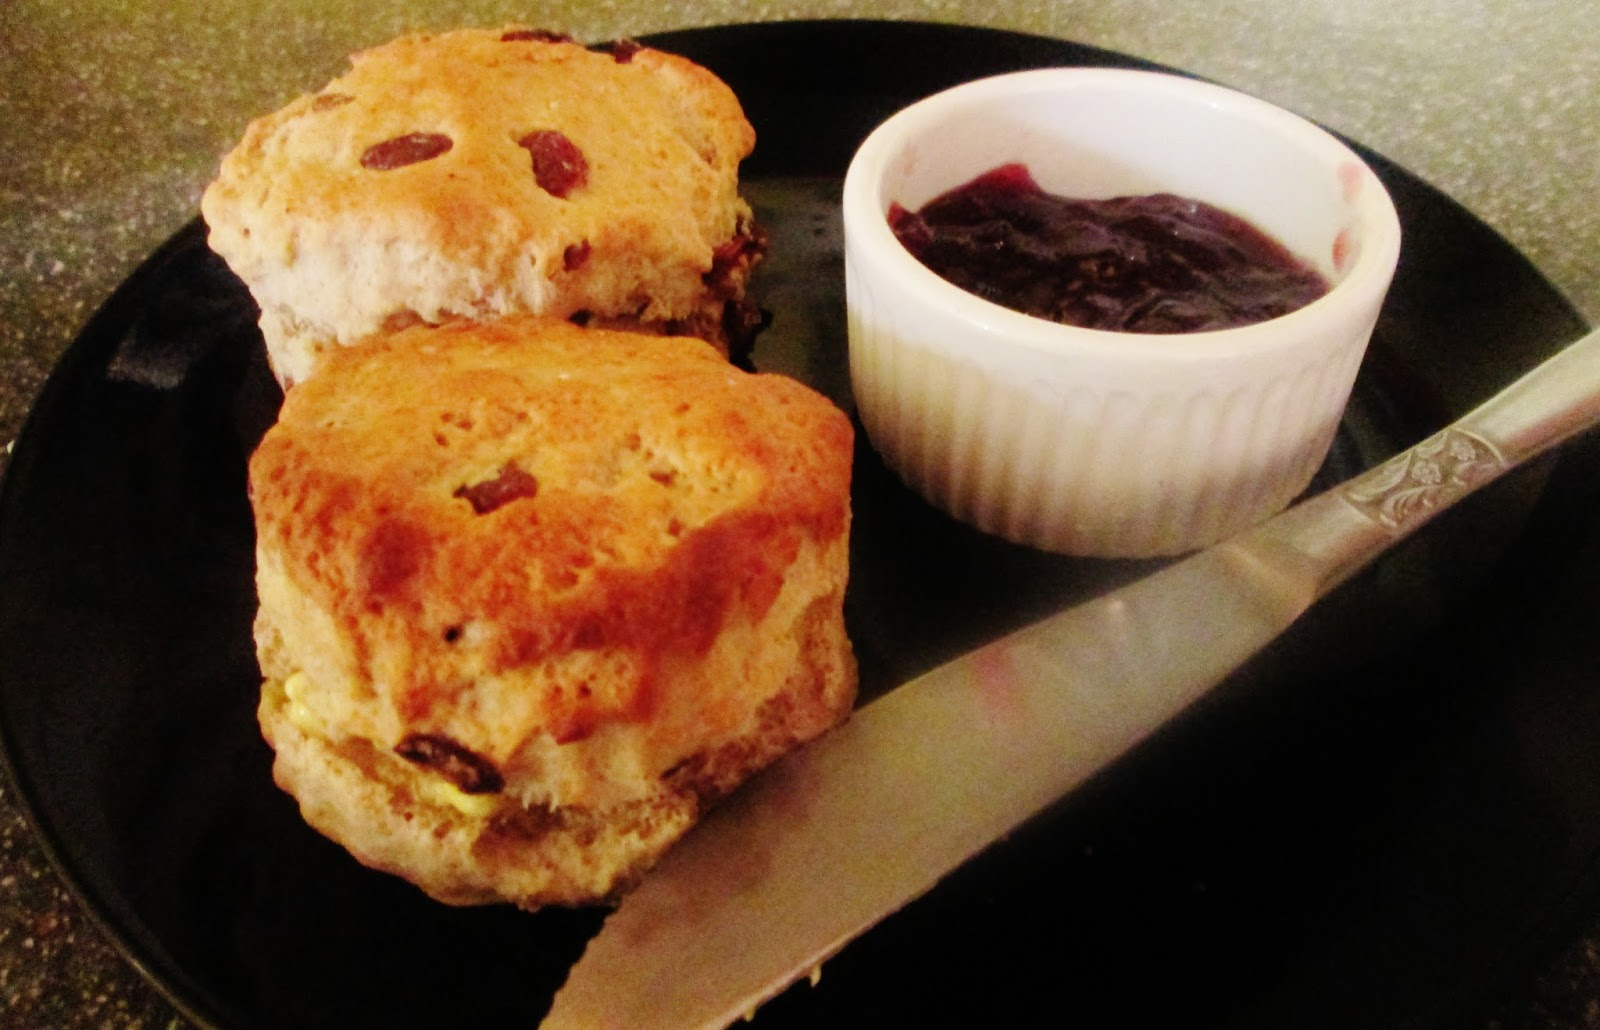 http://themessykitchenuk.blogspot.co.uk/2013/08/simple-scones.html